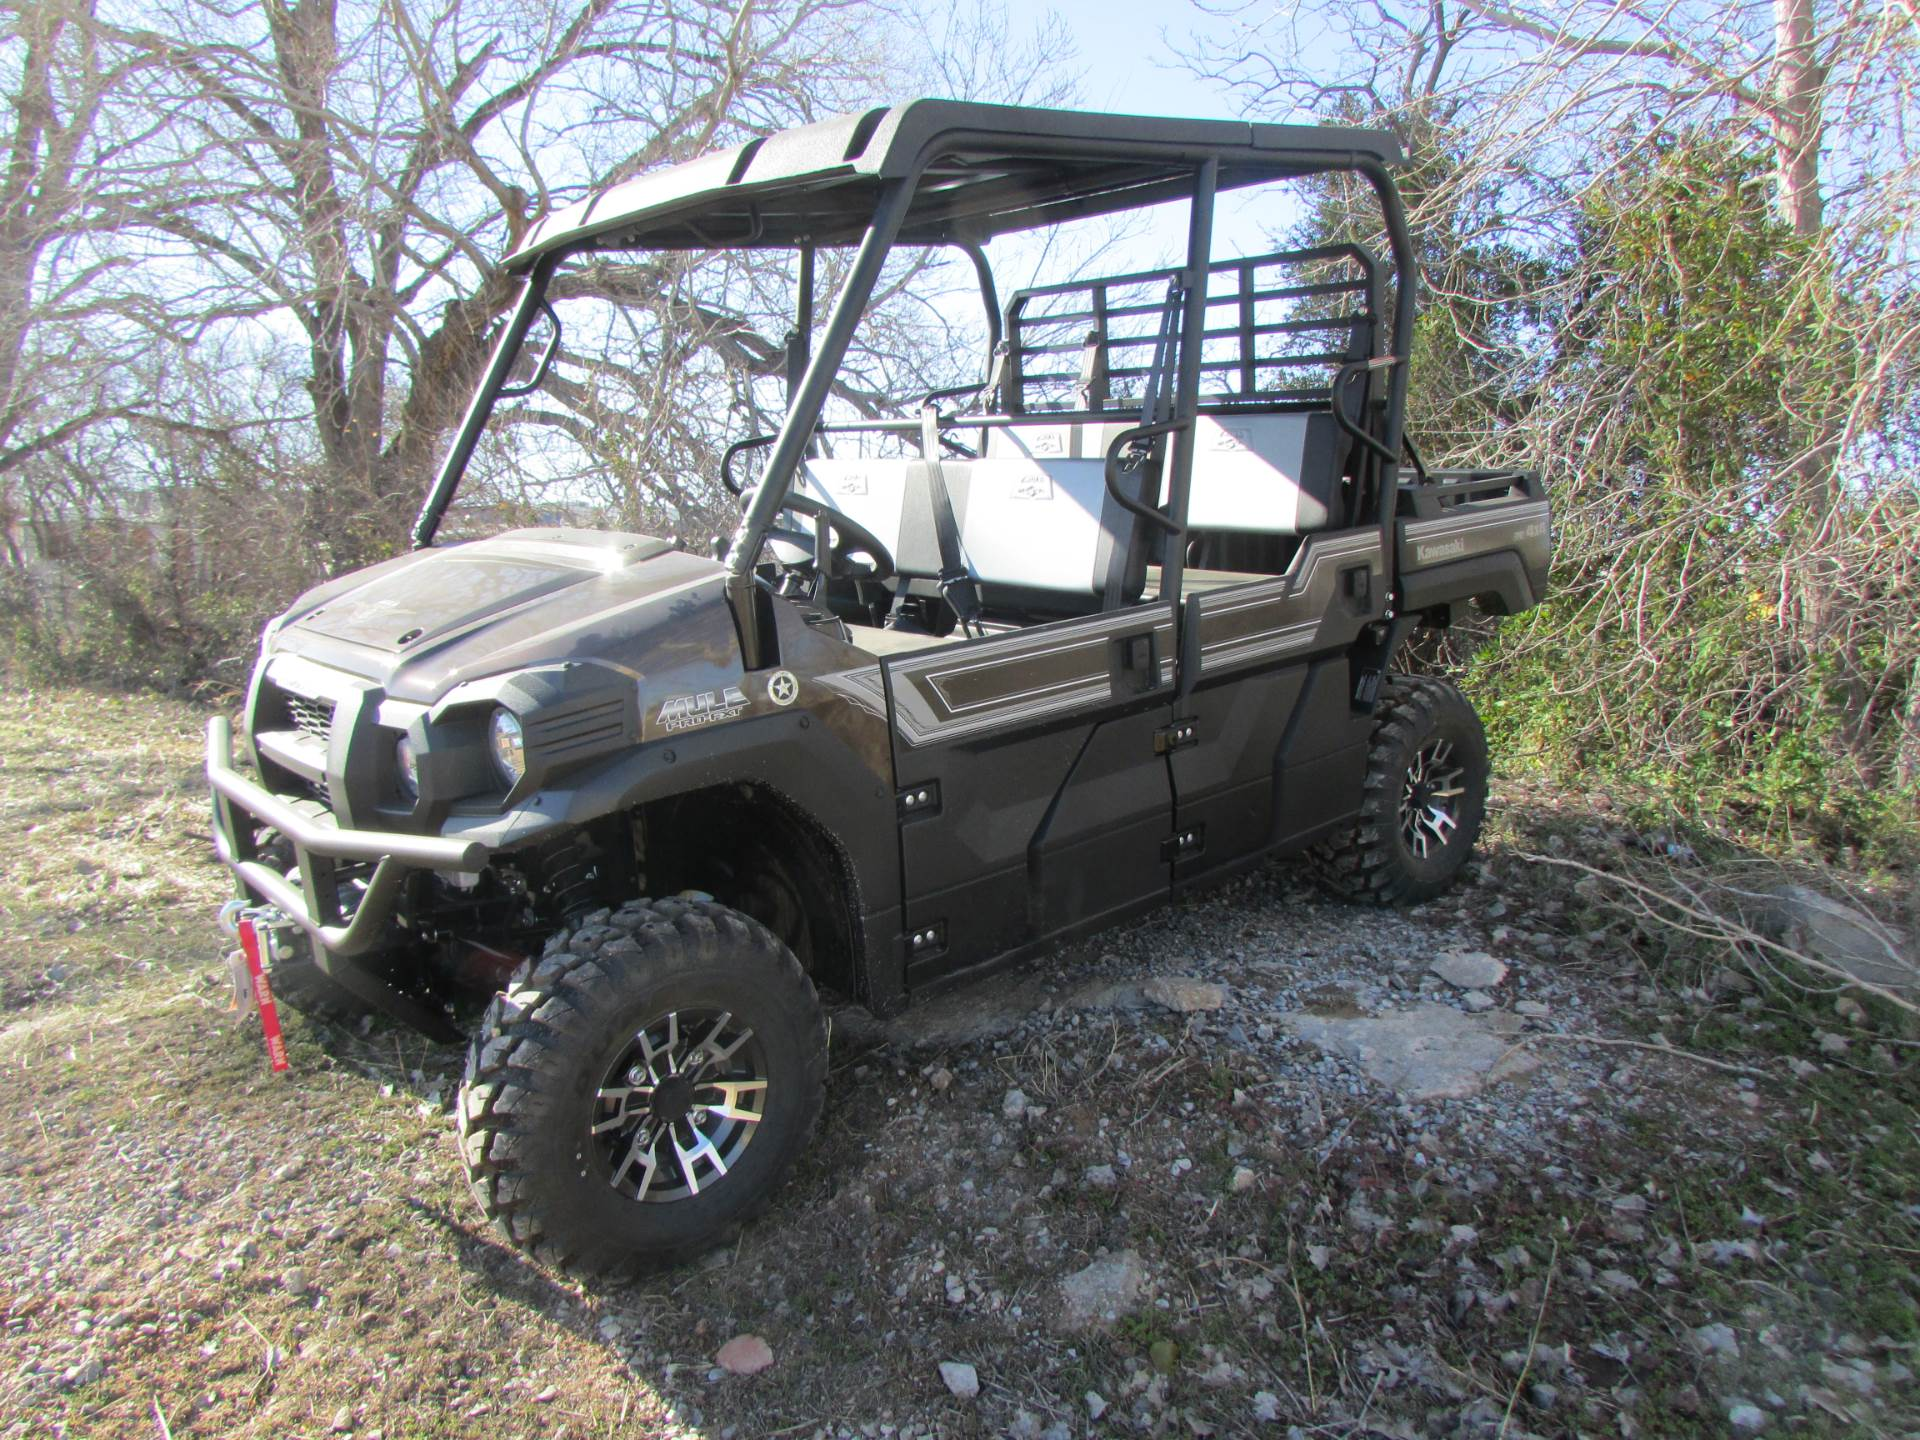 2020 Kawasaki Mule PRO-FXT Ranch Edition for sale 187532